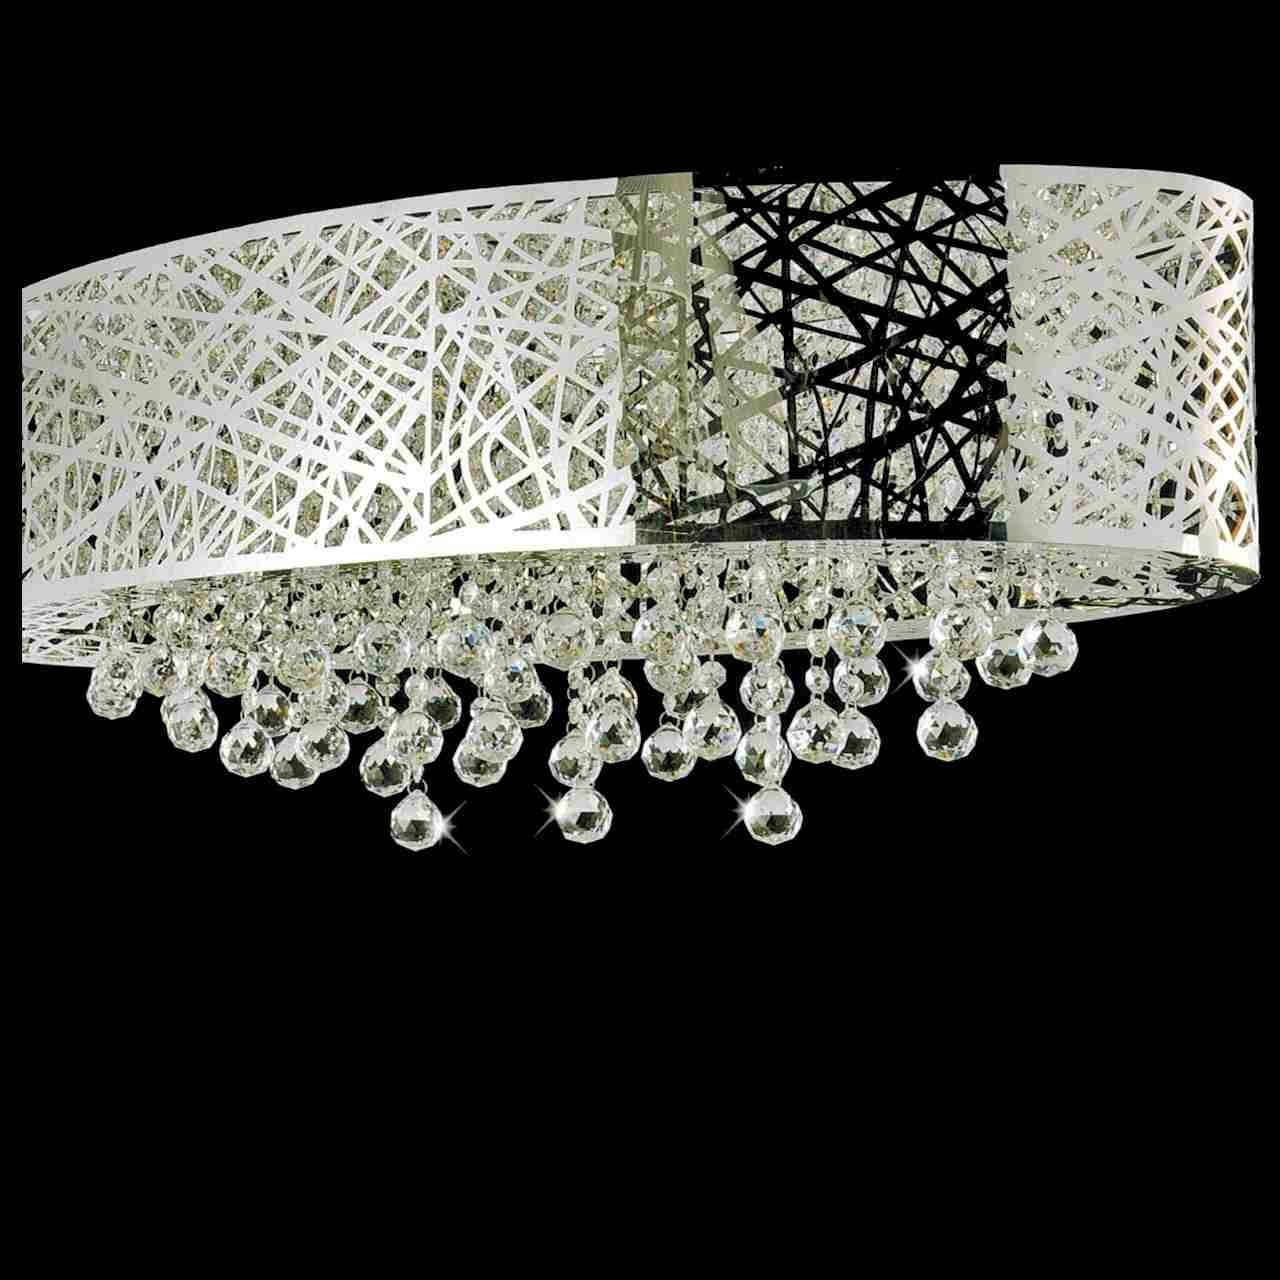 2019 Brizzo Lighting Stores Within Wall Mount Crystal Chandeliers (View 1 of 20)